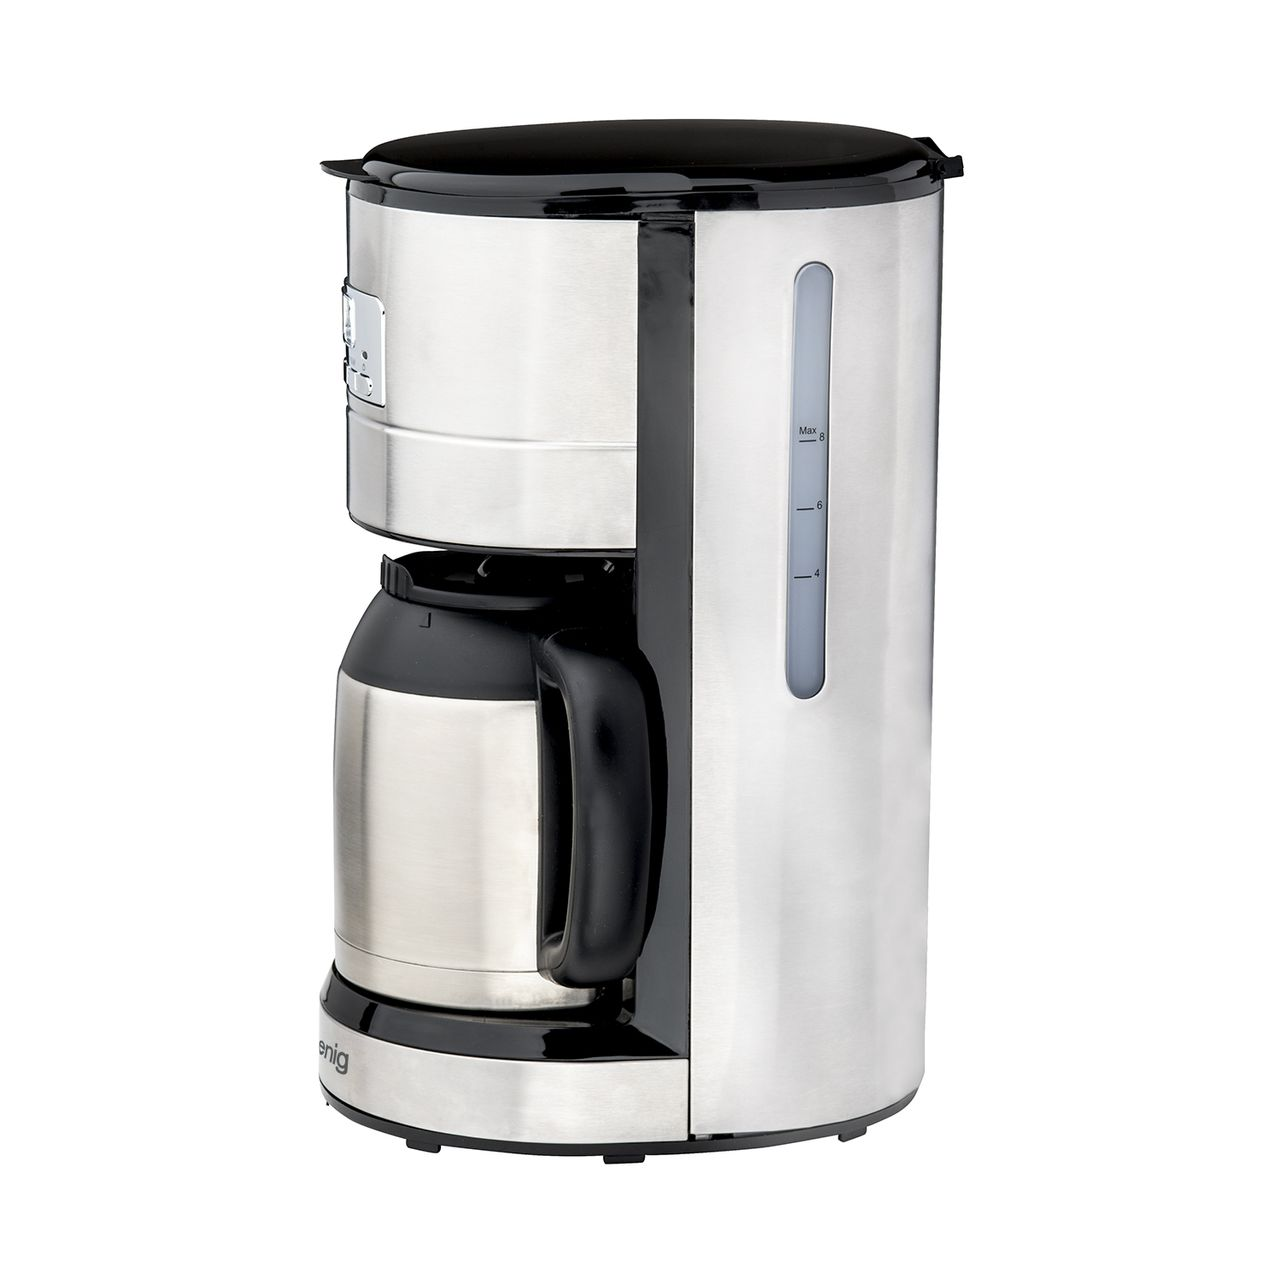 Programmable Filter Coffee Maker : h.Koenig Filter Coffee Maker Programmable 1,2 L Keep Warm Function Clock 1000 W eBay